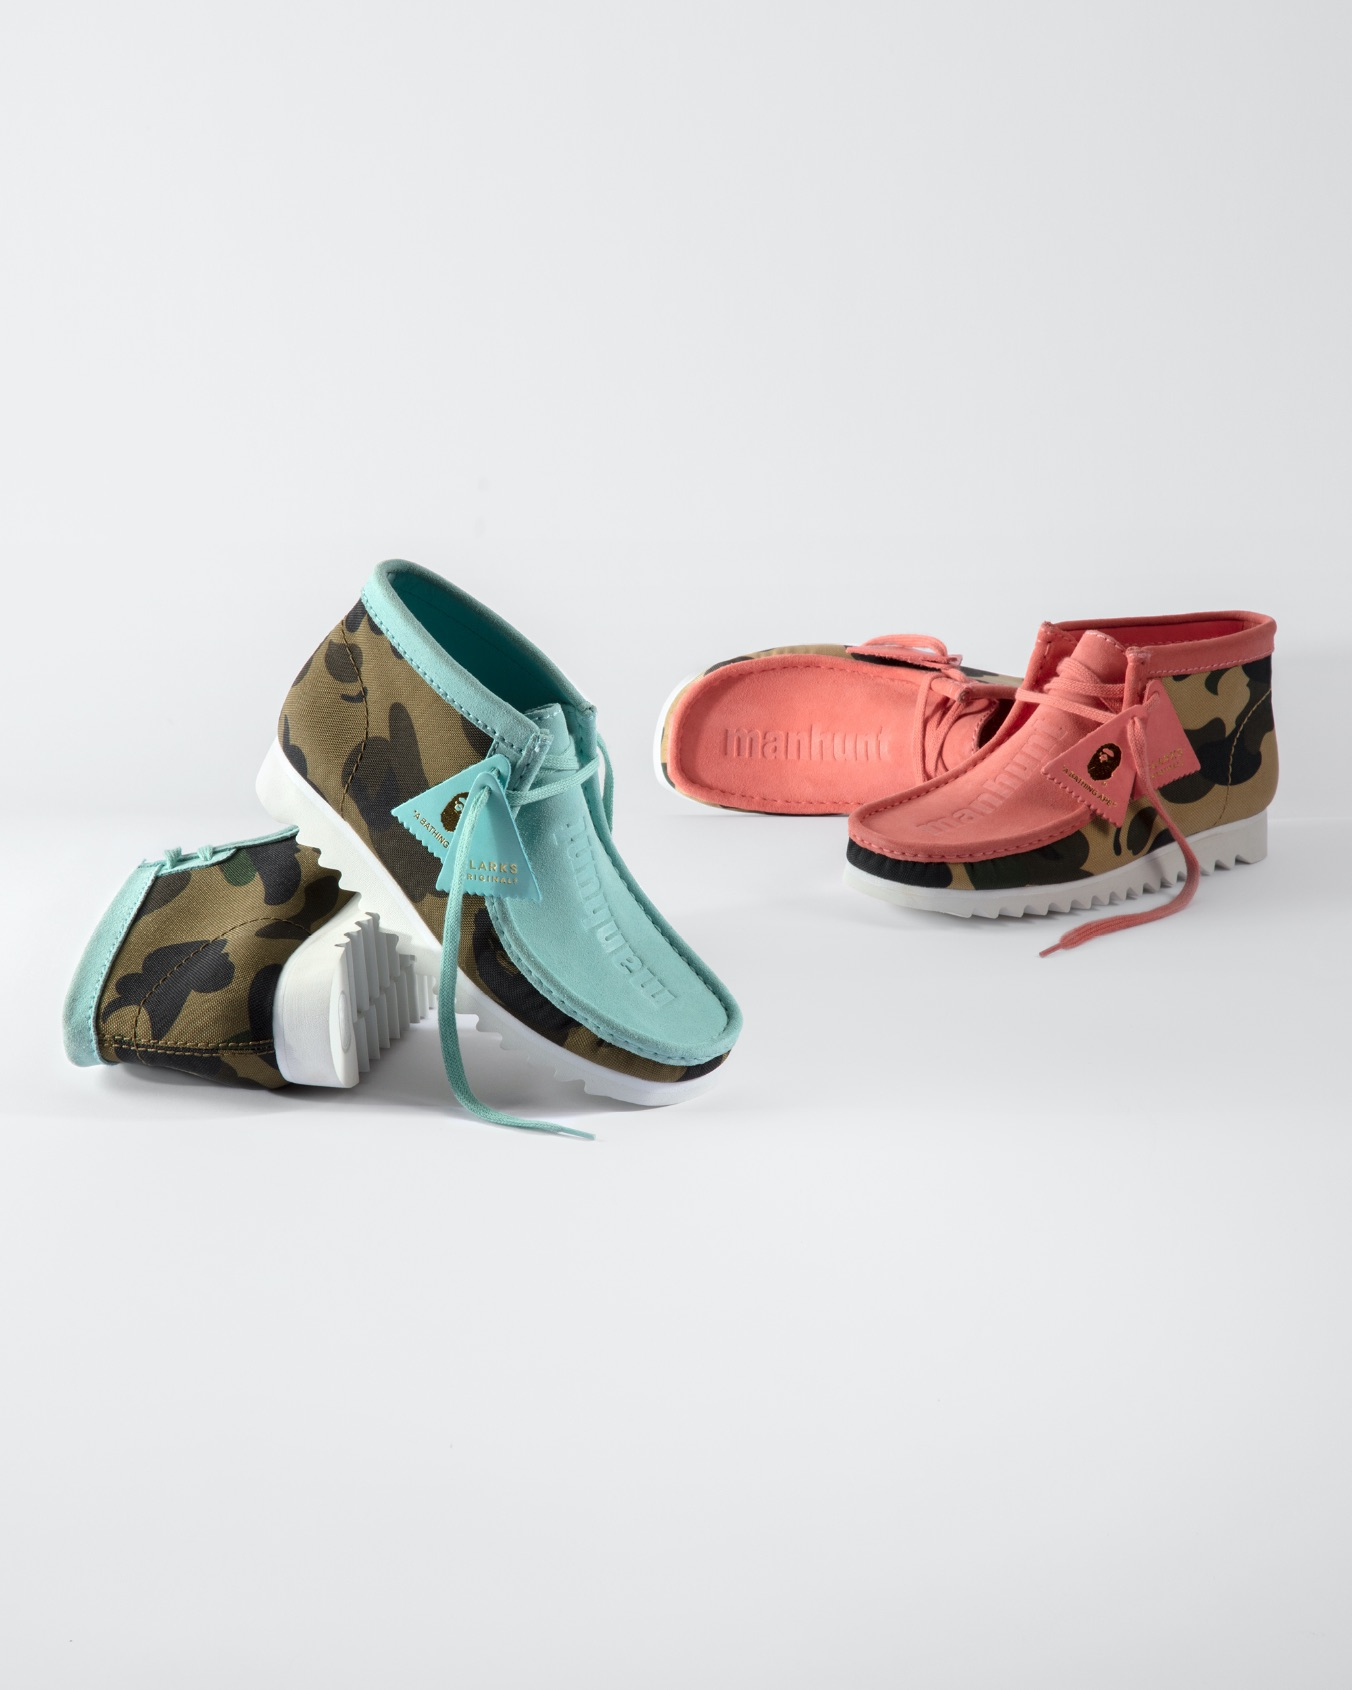 a-bathing-ape-clarks-originals%e3%83%99%e3%82%a4%e3%83%97-bape5